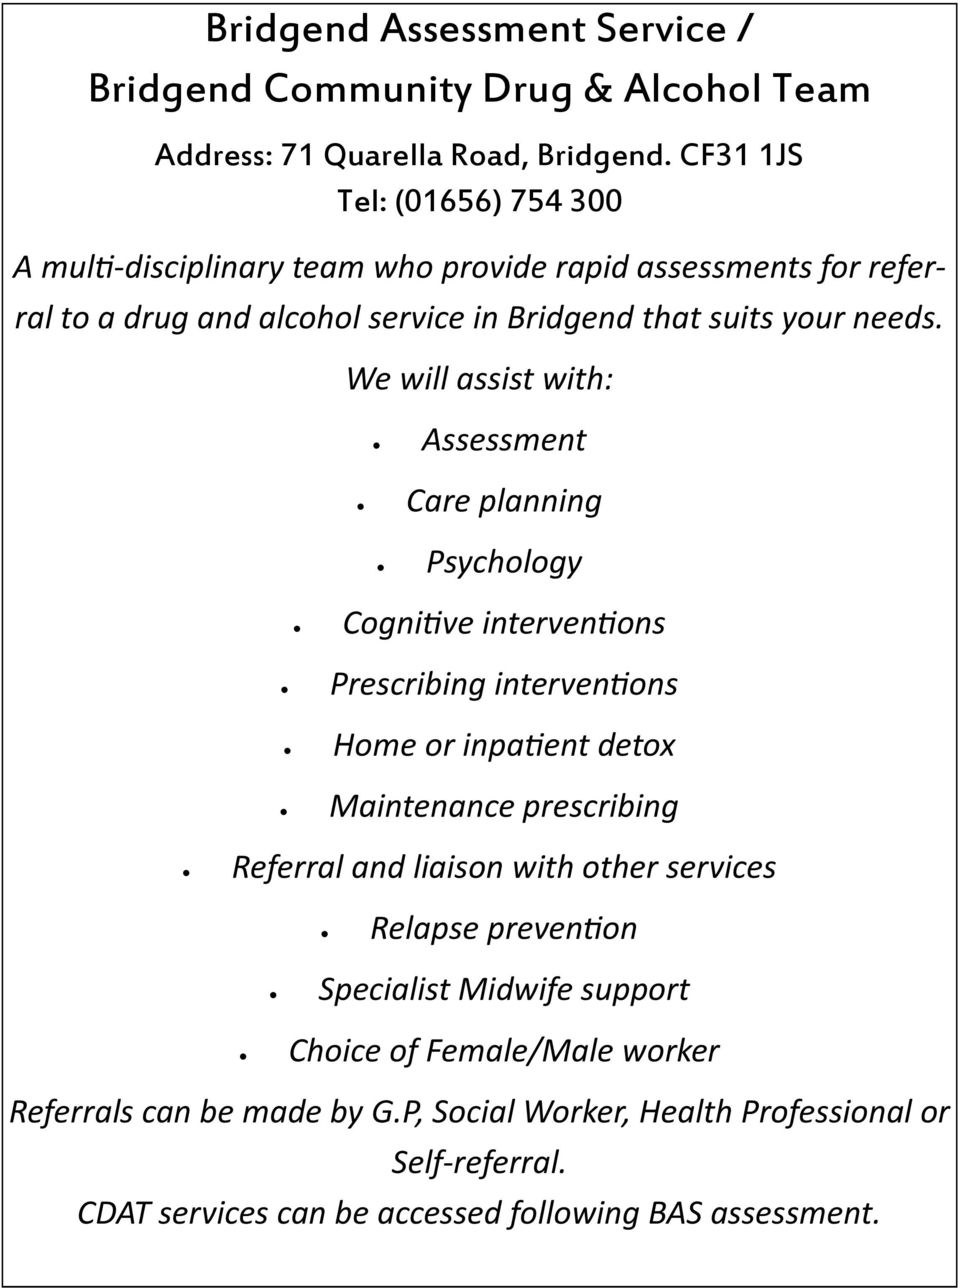 We will assist with: Assessment Care planning Psychology Cognitive interventions Prescribing interventions Home or inpatient detox Maintenance prescribing Referral and